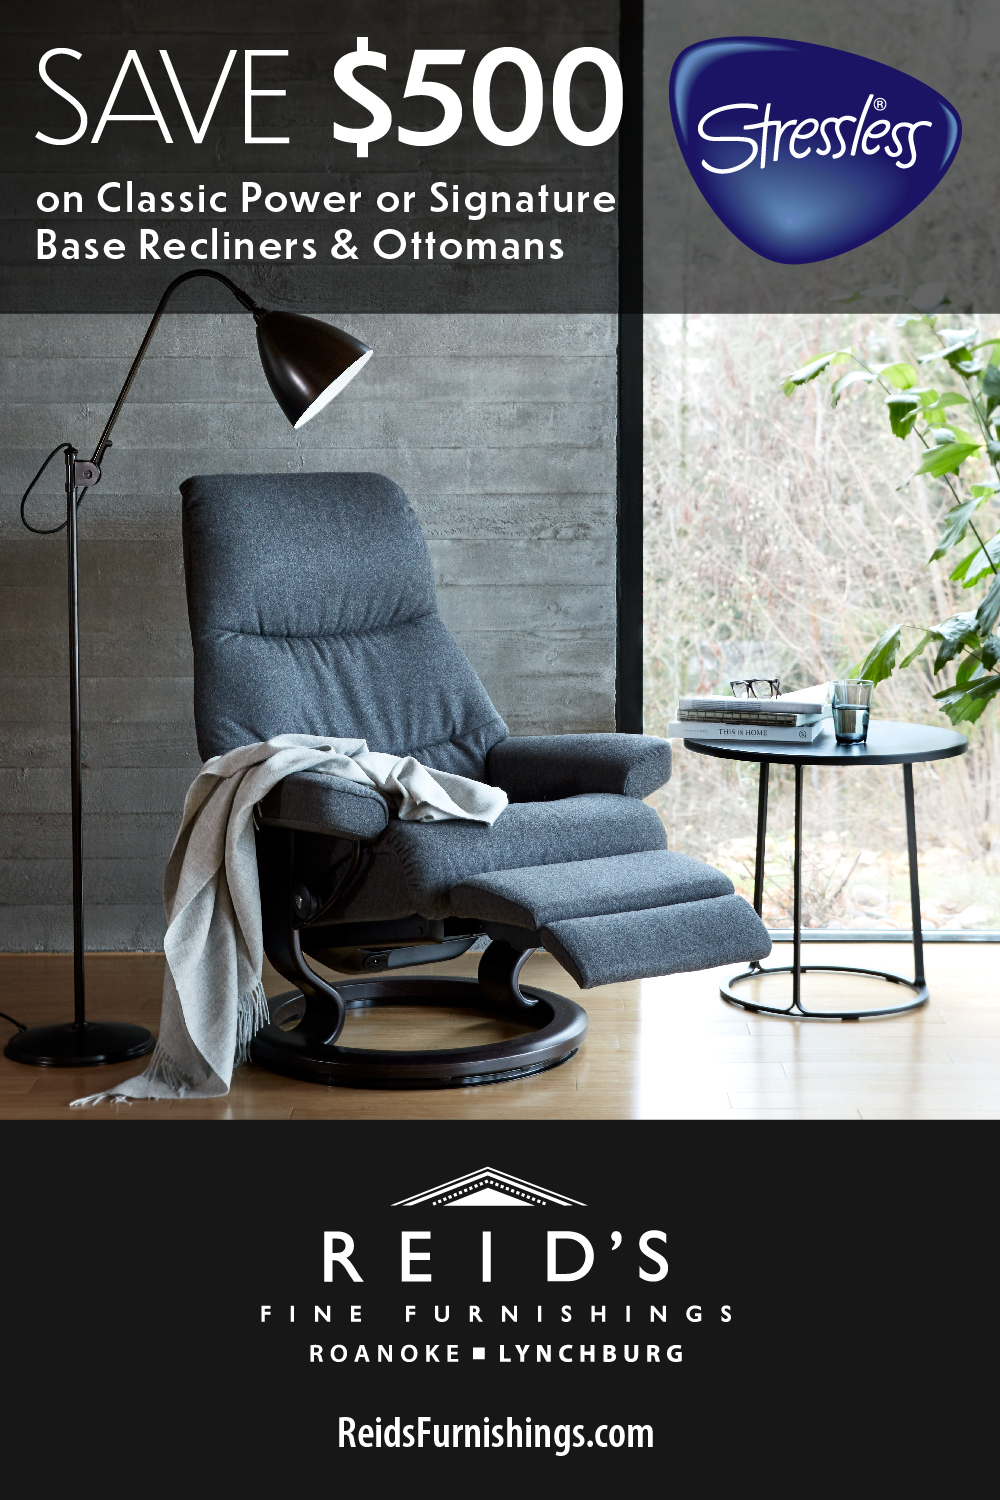 $500 OFF Classic Power, Base Recliners & Ottomans